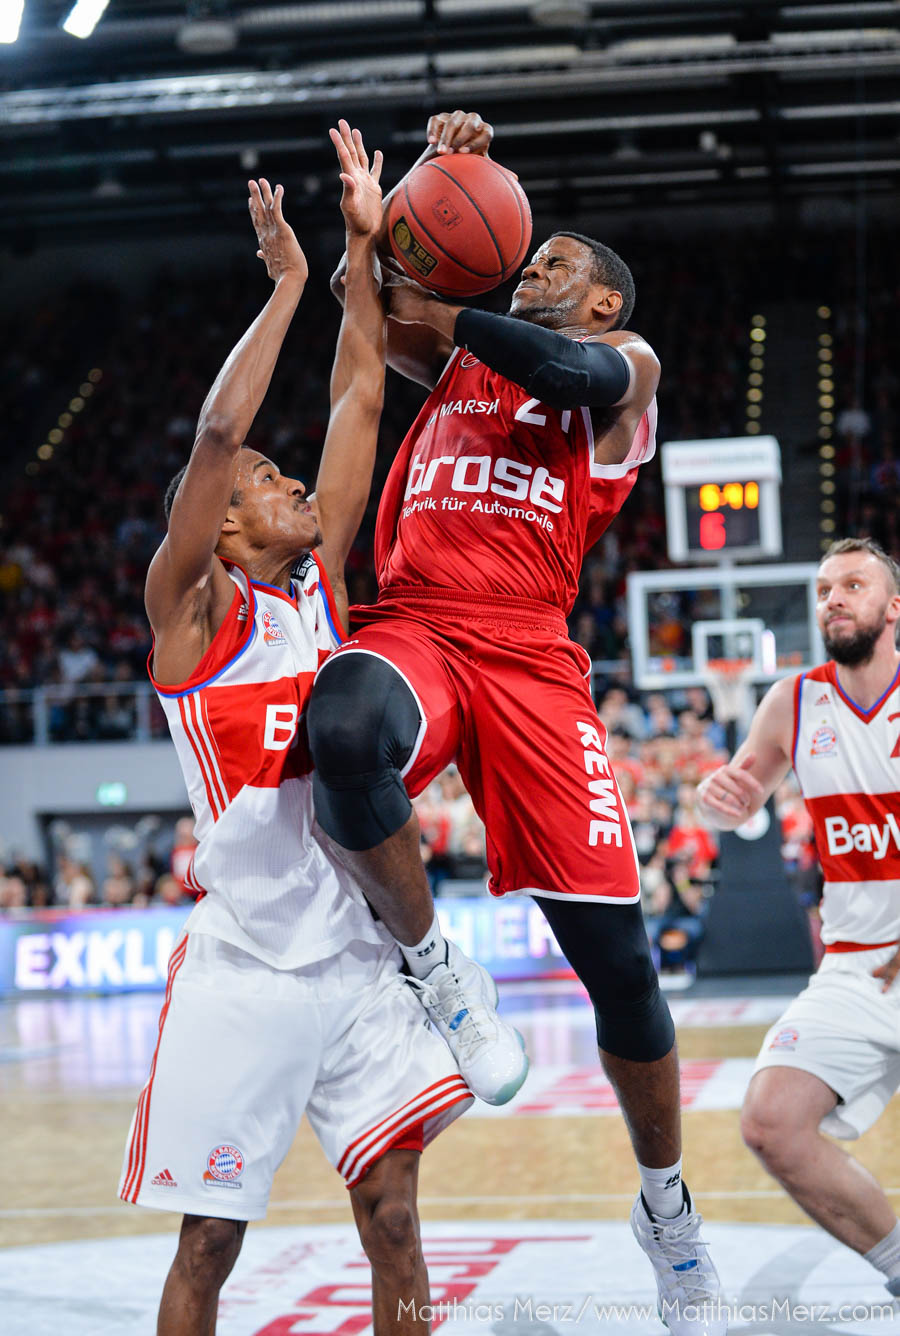 Brose Baskets Bayern